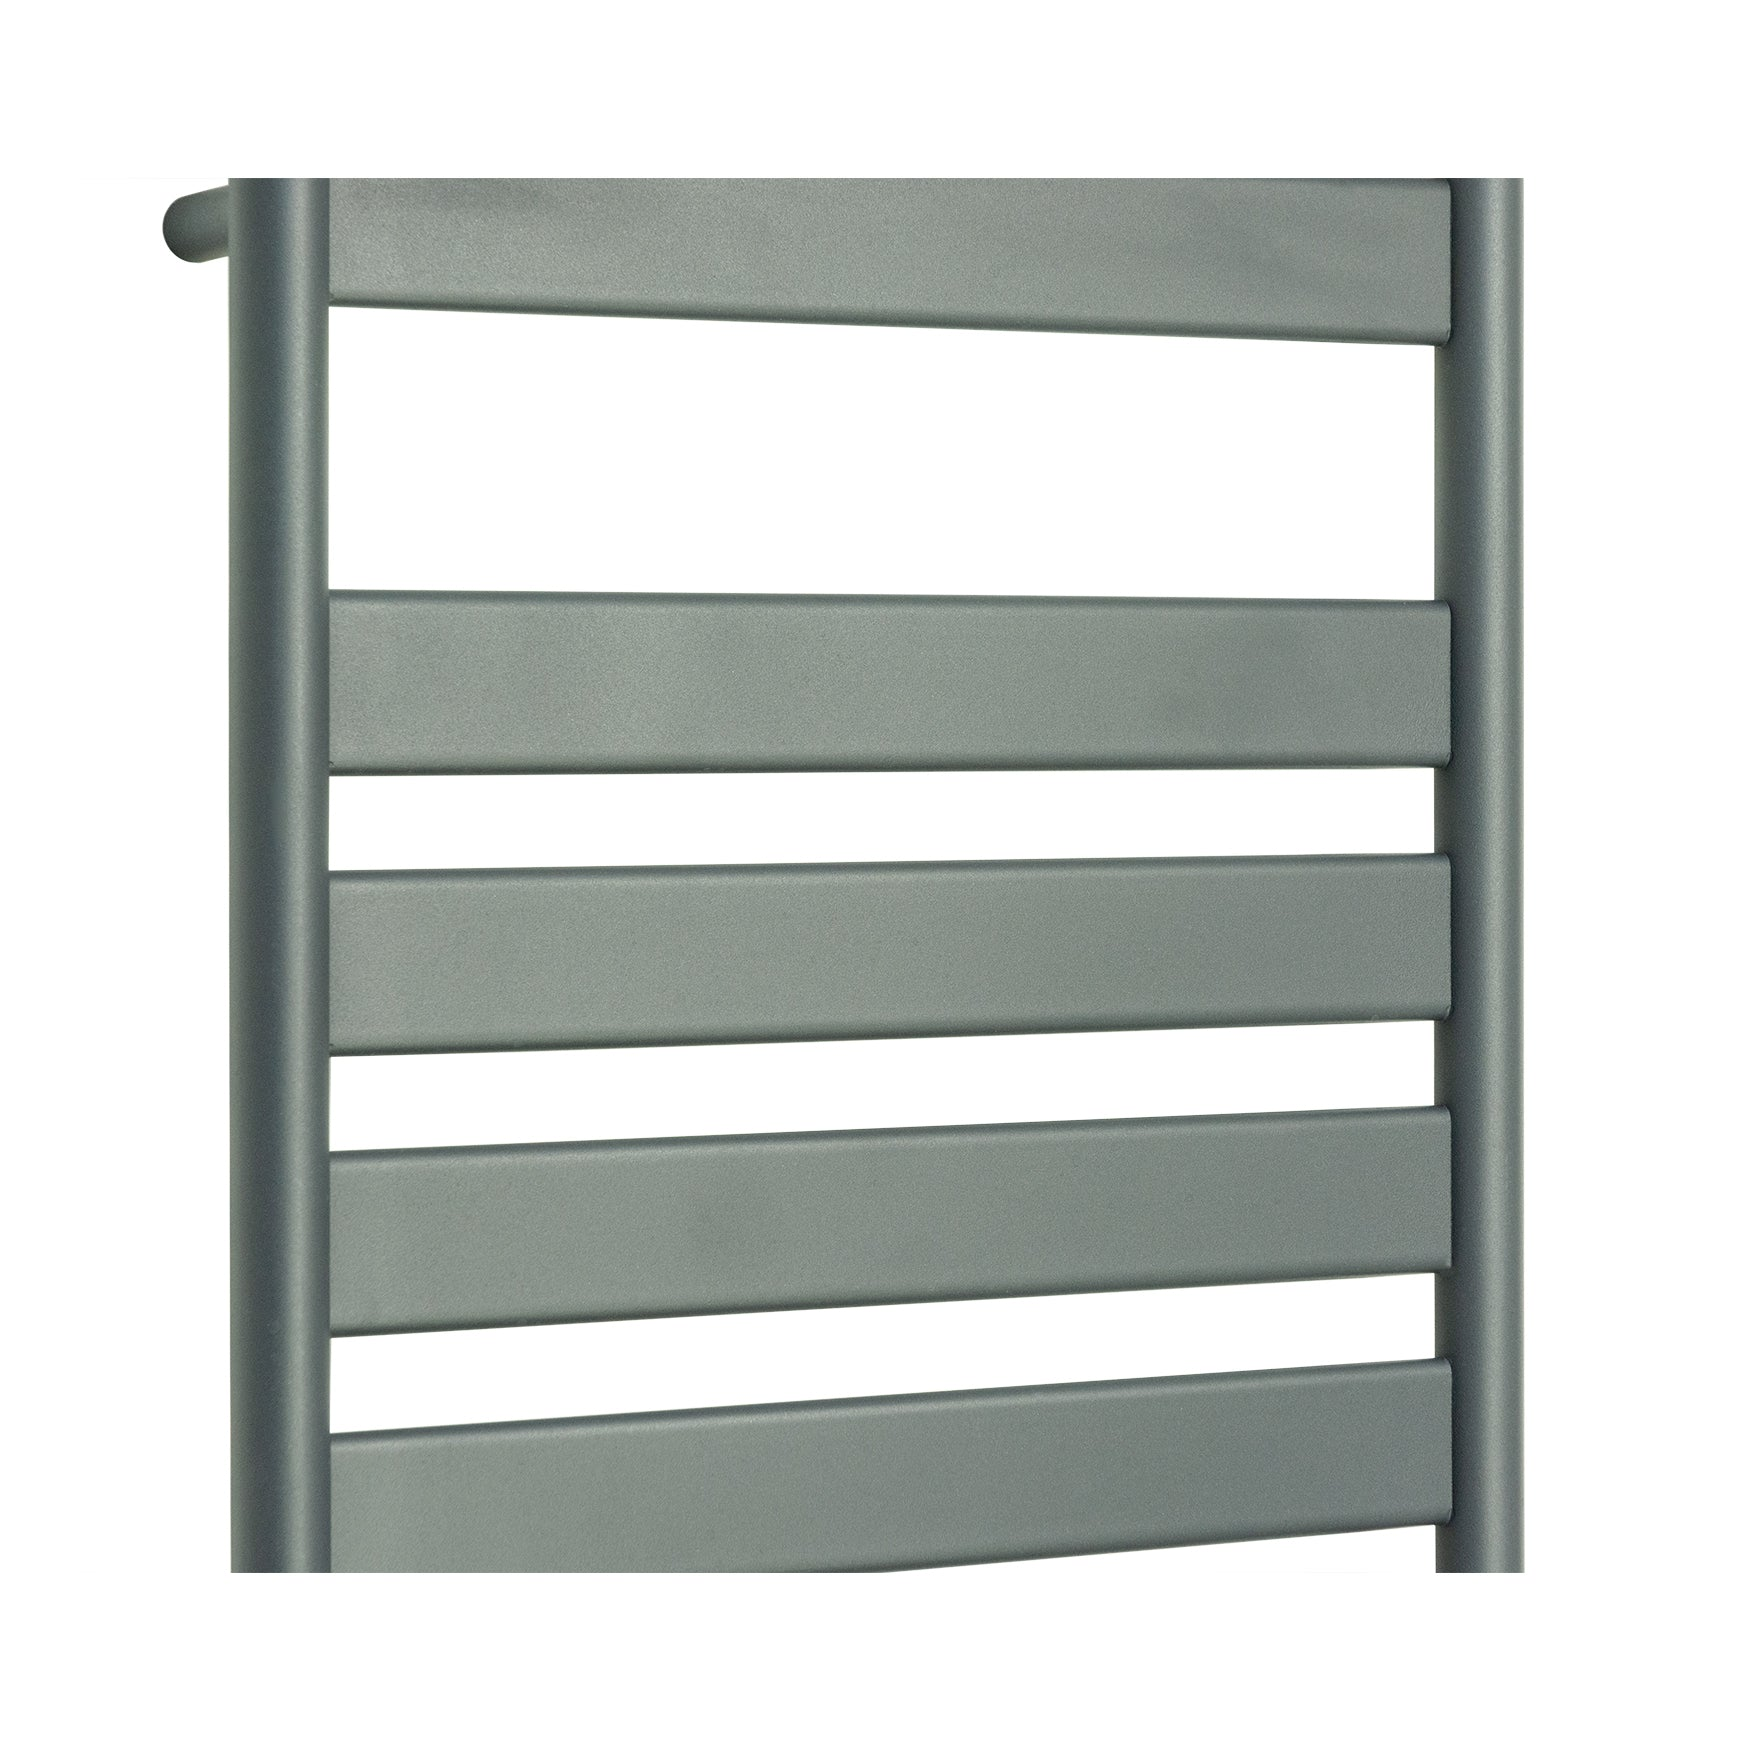 950 x 500 mm Anthracite Heated Flat Panel Towel Rail Radiator Central heating or Electric